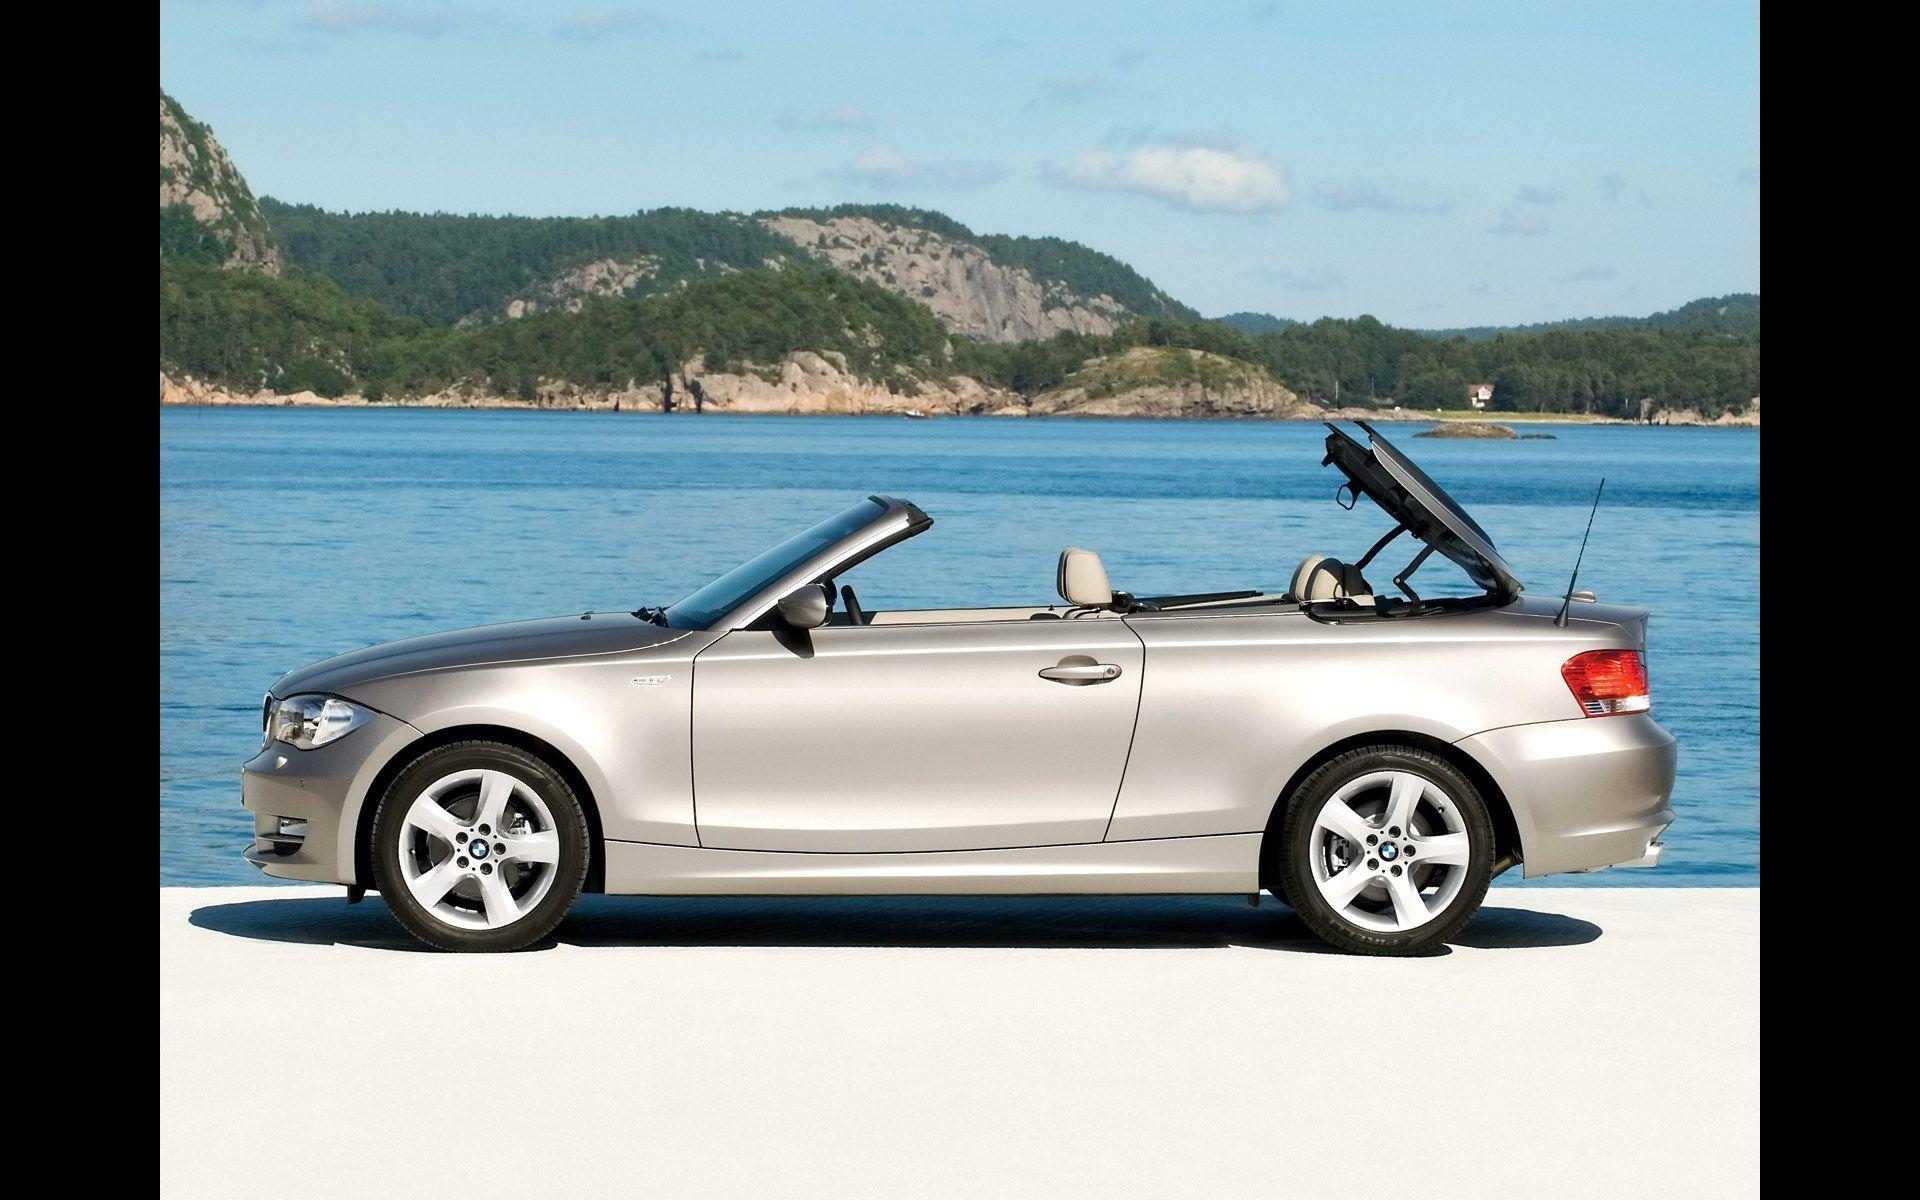 2008 BMW 1 Series Convertible Wallpaper 17 - 1920x1200